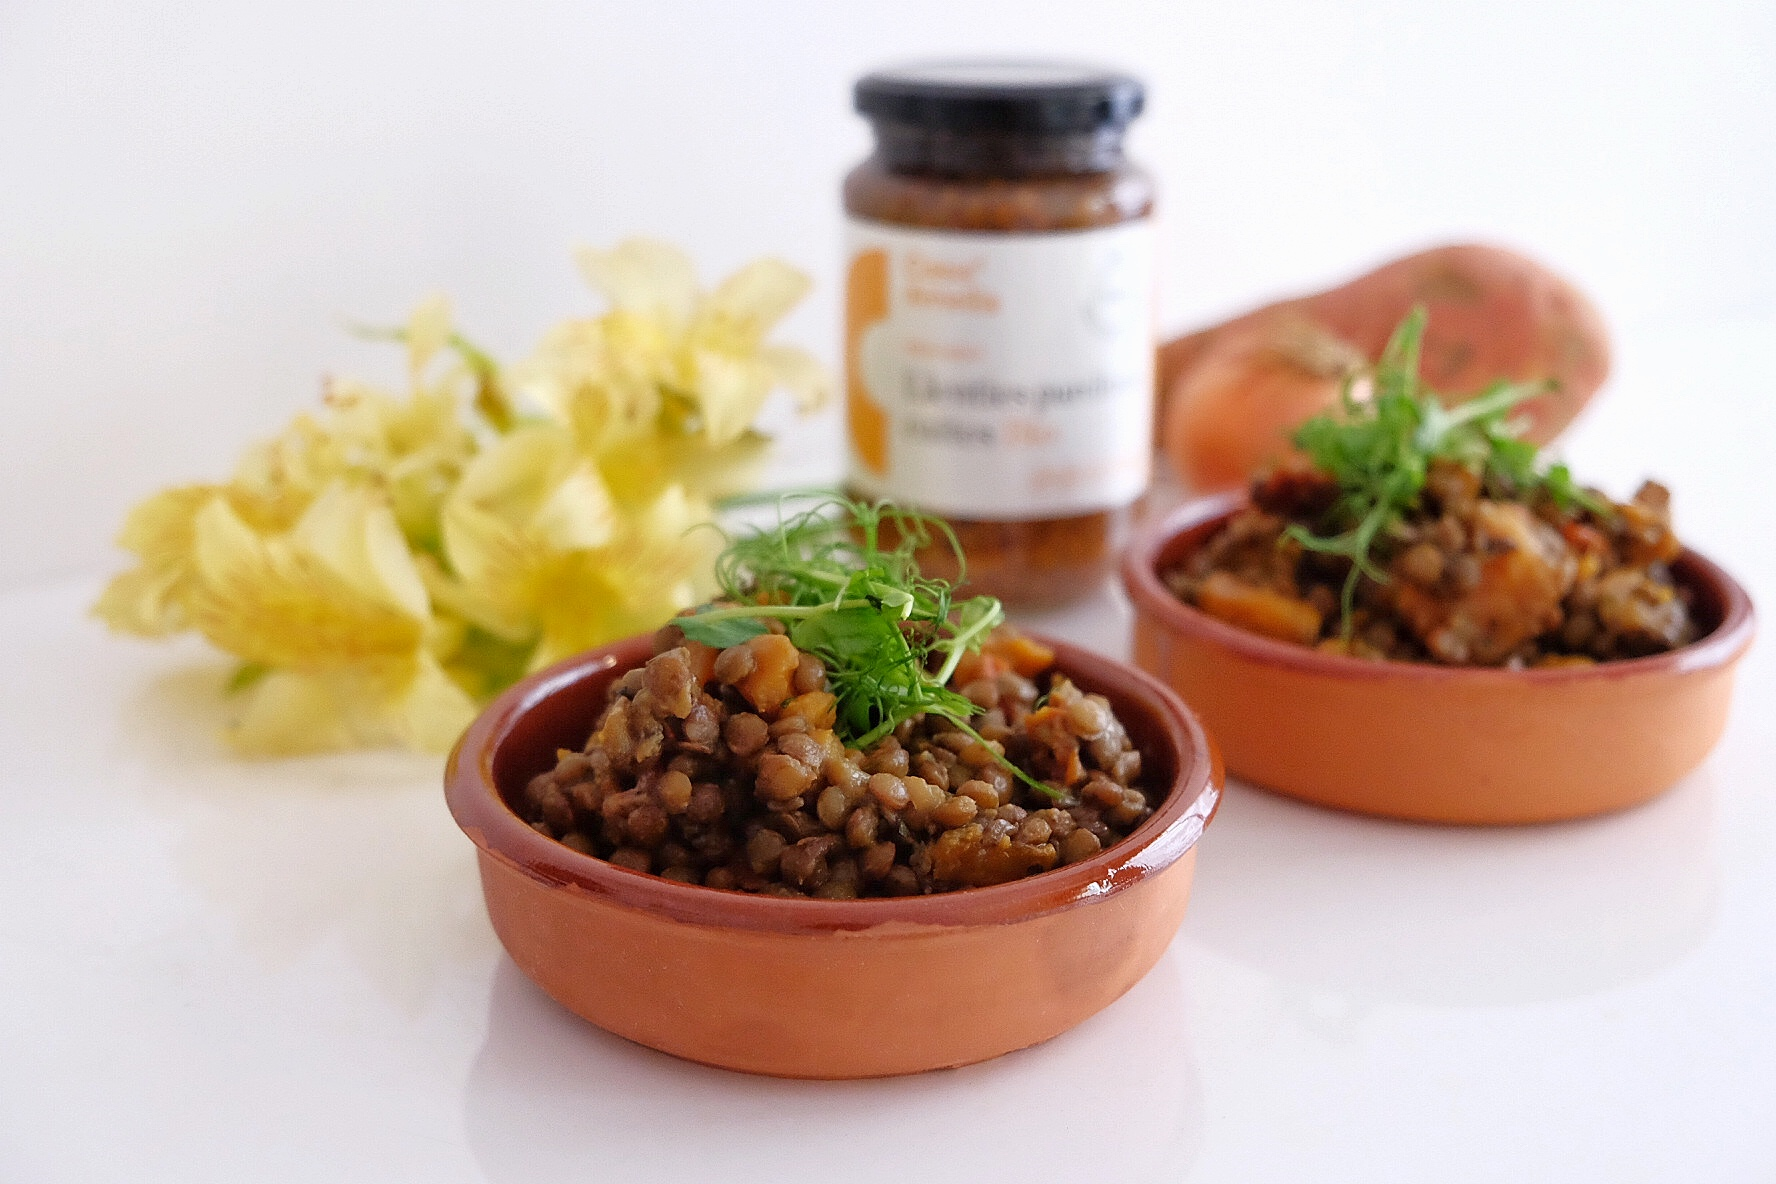 Lentils with sun-dried tomatoes and sweet potatoes